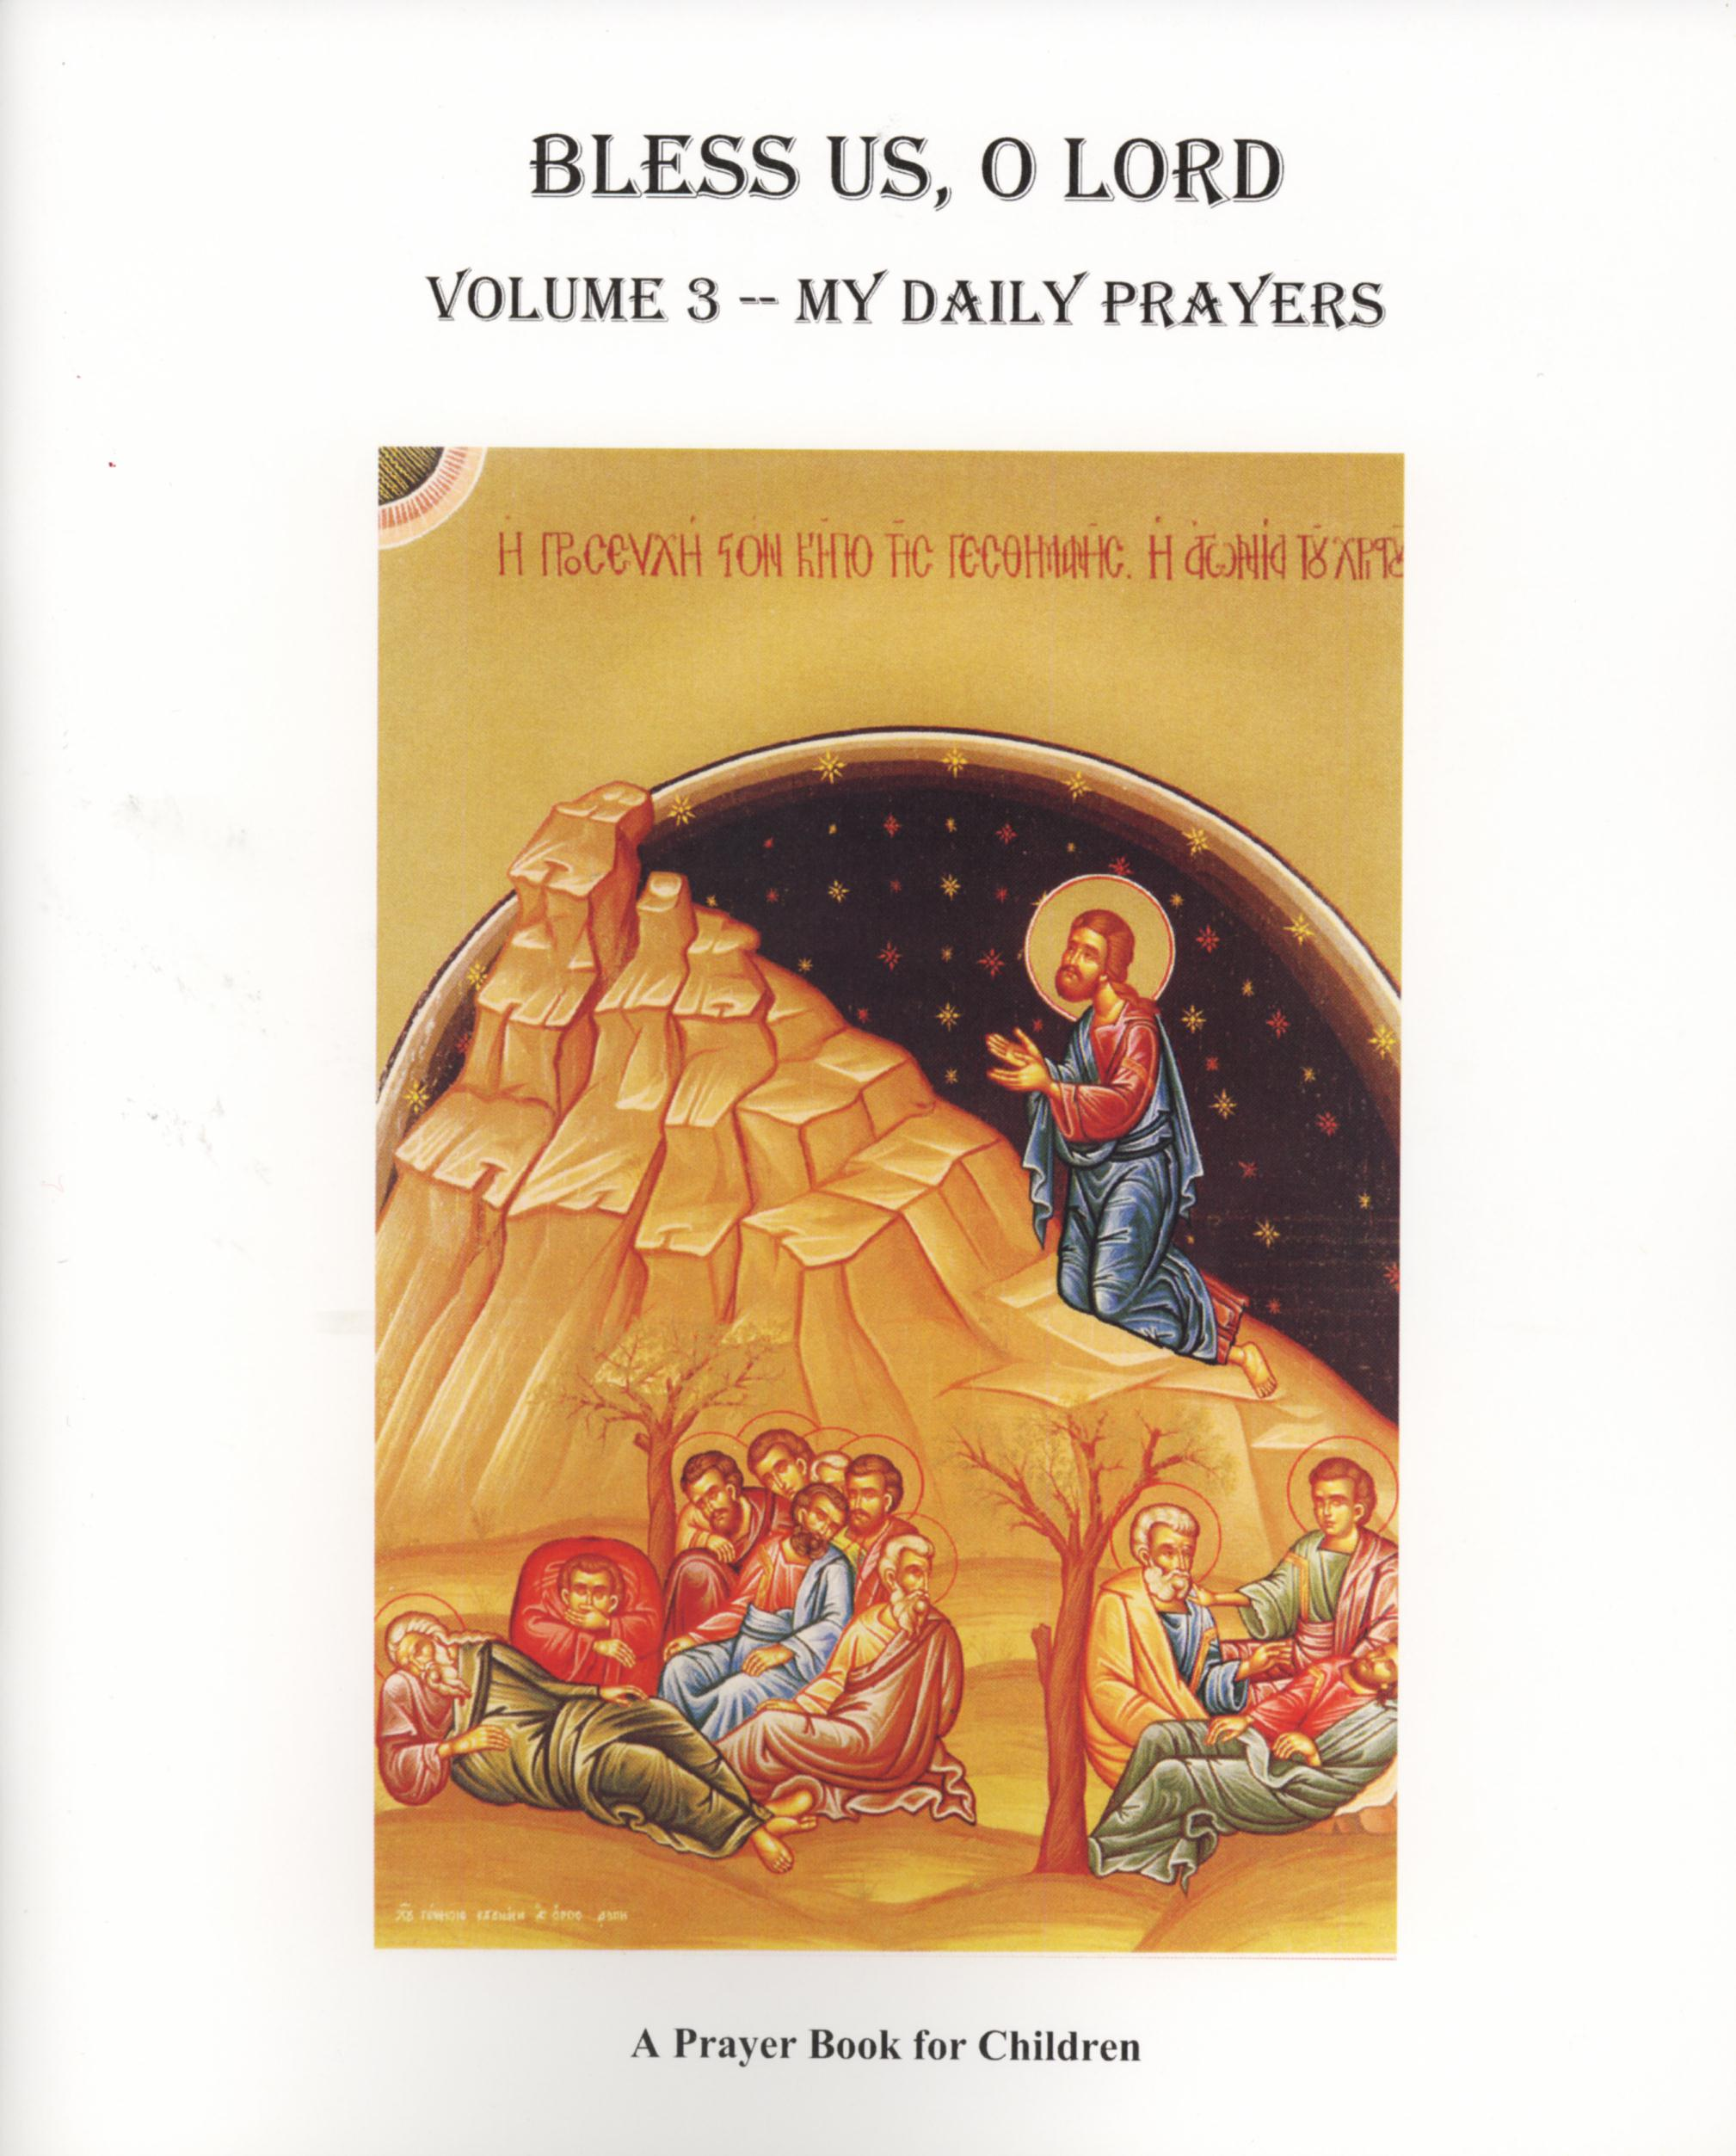 Bless Us - O Lord: Volume 3 -- My Daily Prayers